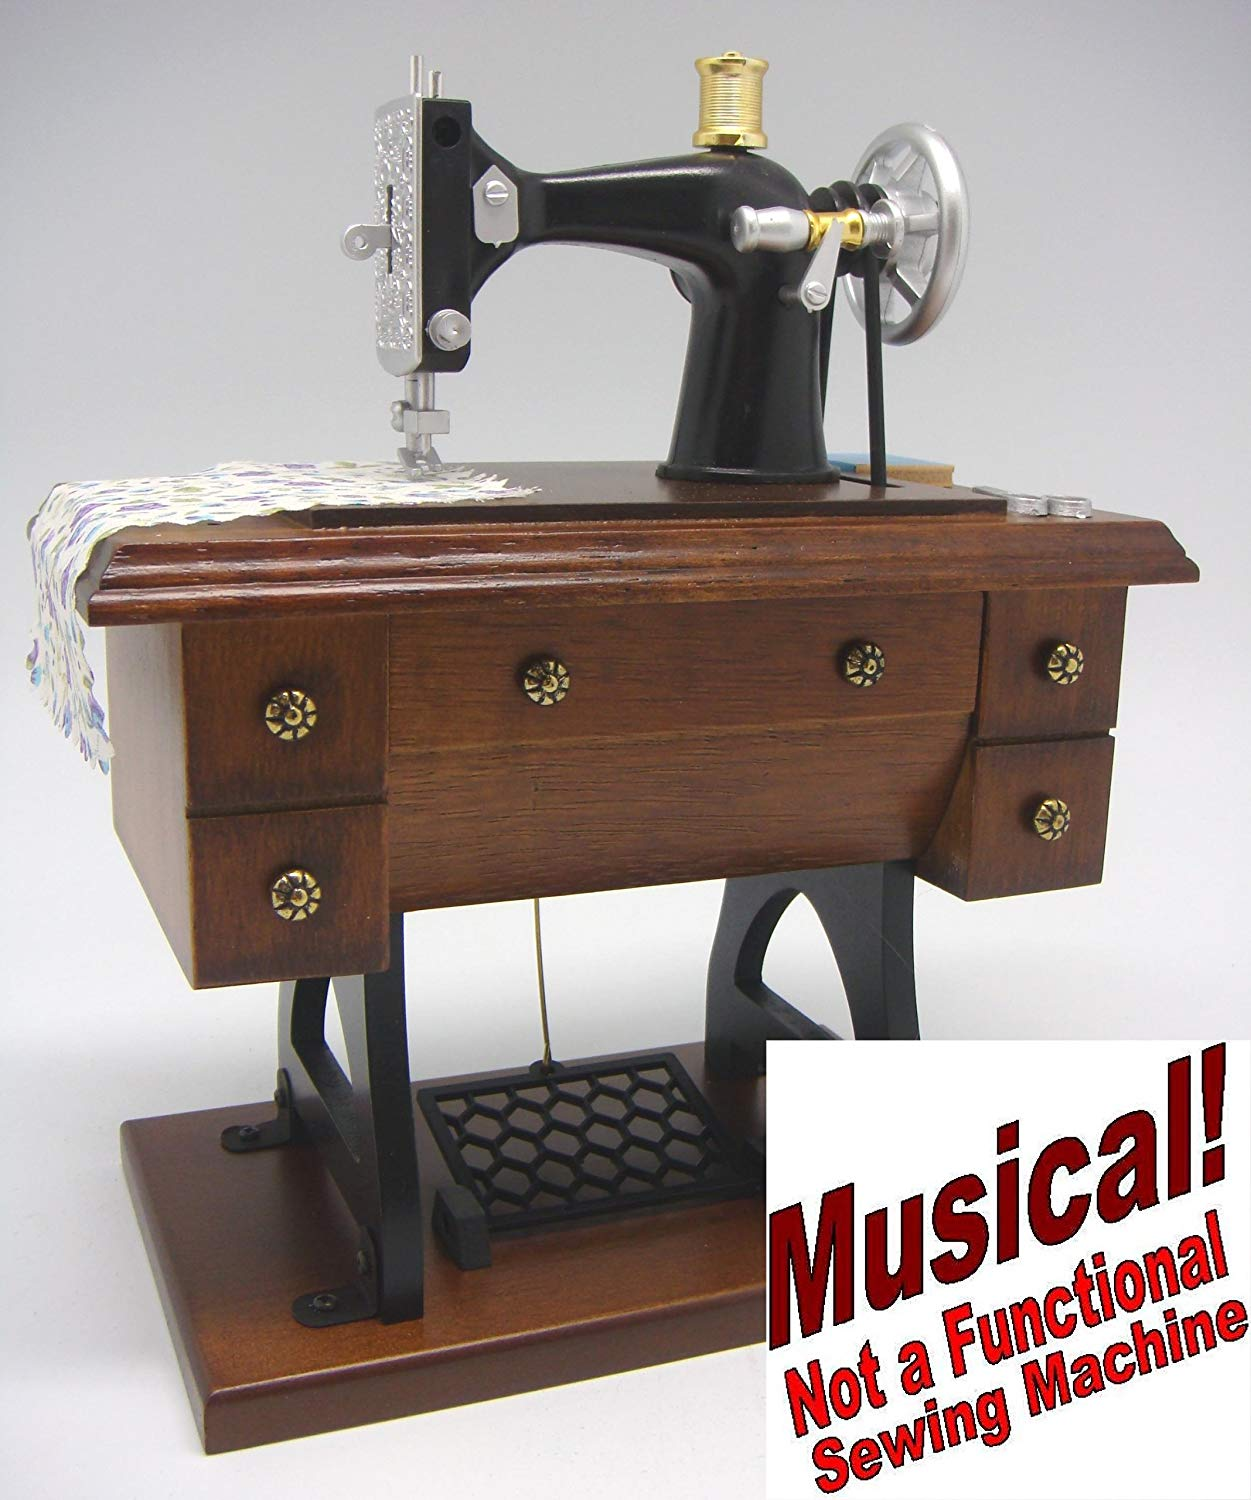 Remarkable, vintage sewing machine value And have